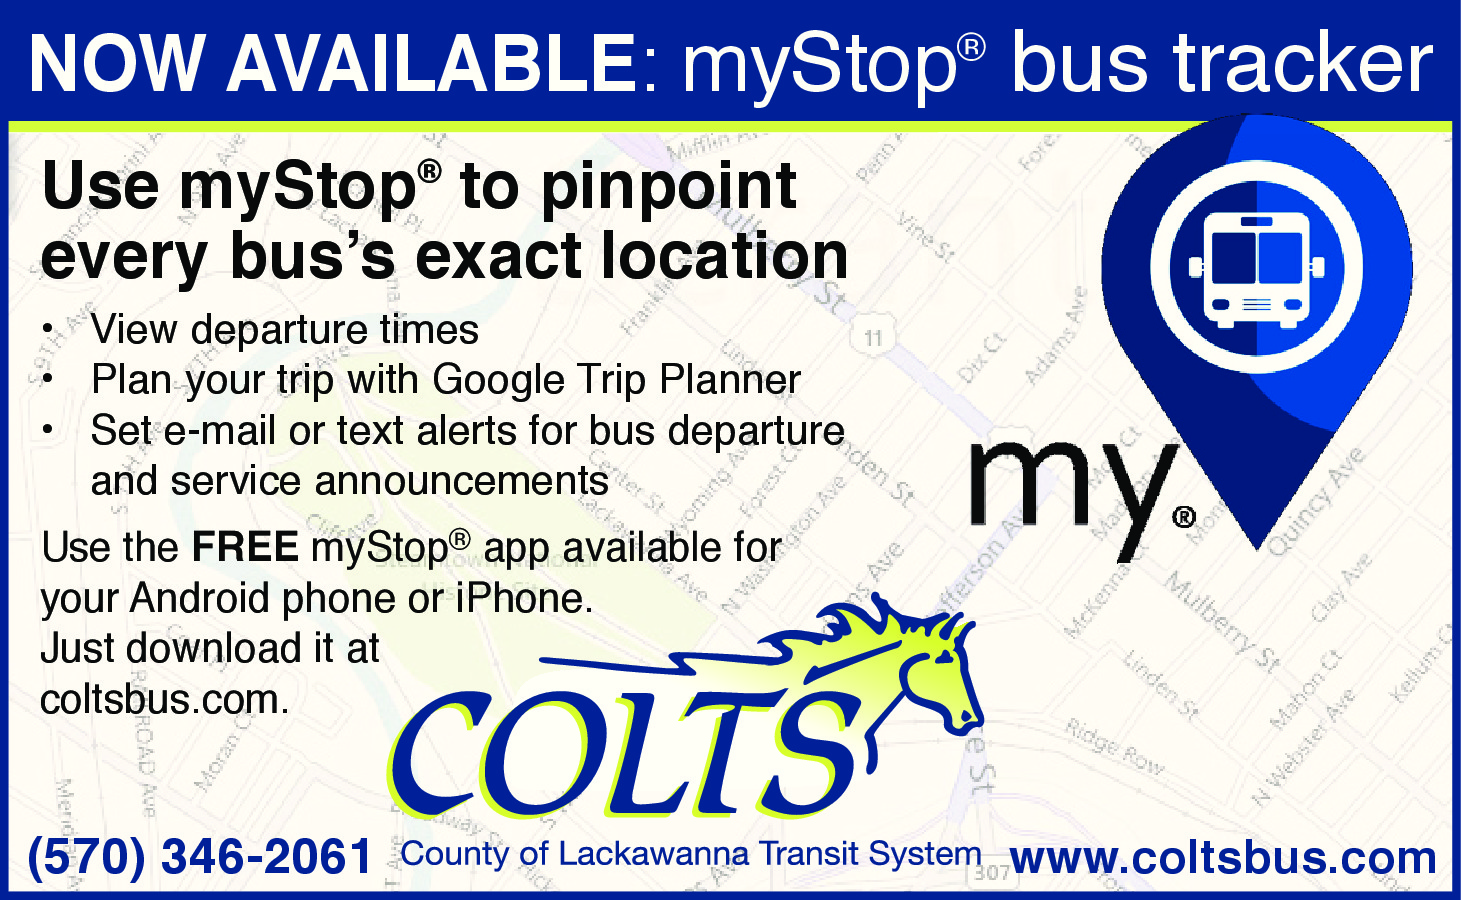 myStop second version